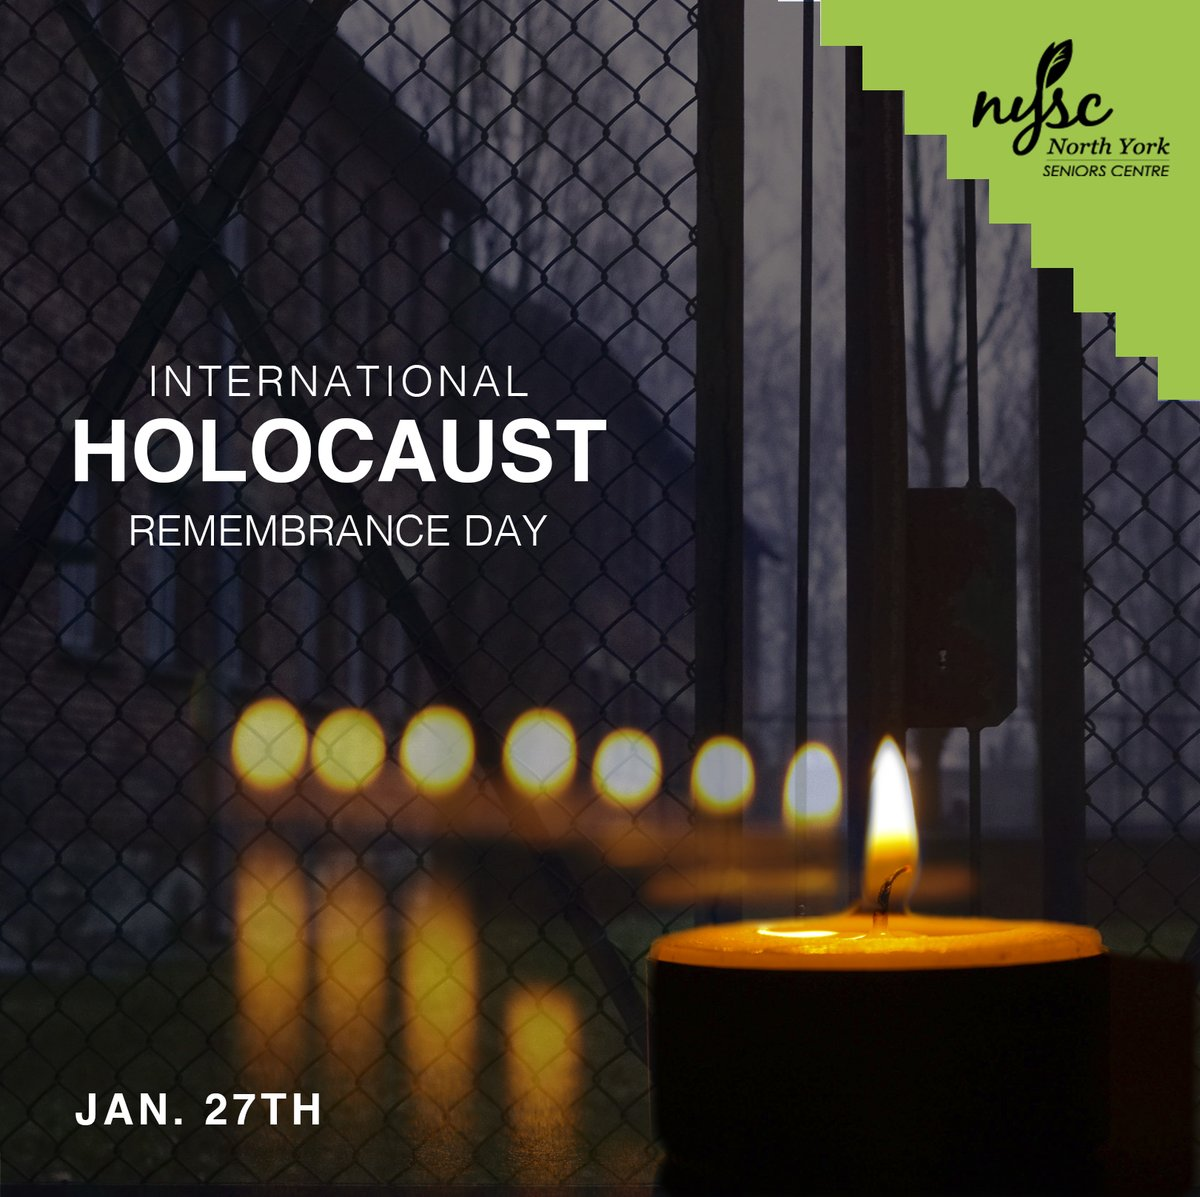 On Jan. 27, the @UN calls the world to remember the #Holocaust that affected millions during World War II. Today is the International #HolocaustRemembranceDay in Memory of the Victims of the Holocaust. #neveragain #holocaustsurvivors #worldwar2 #Auschwitz #WeRemember #NeverForget